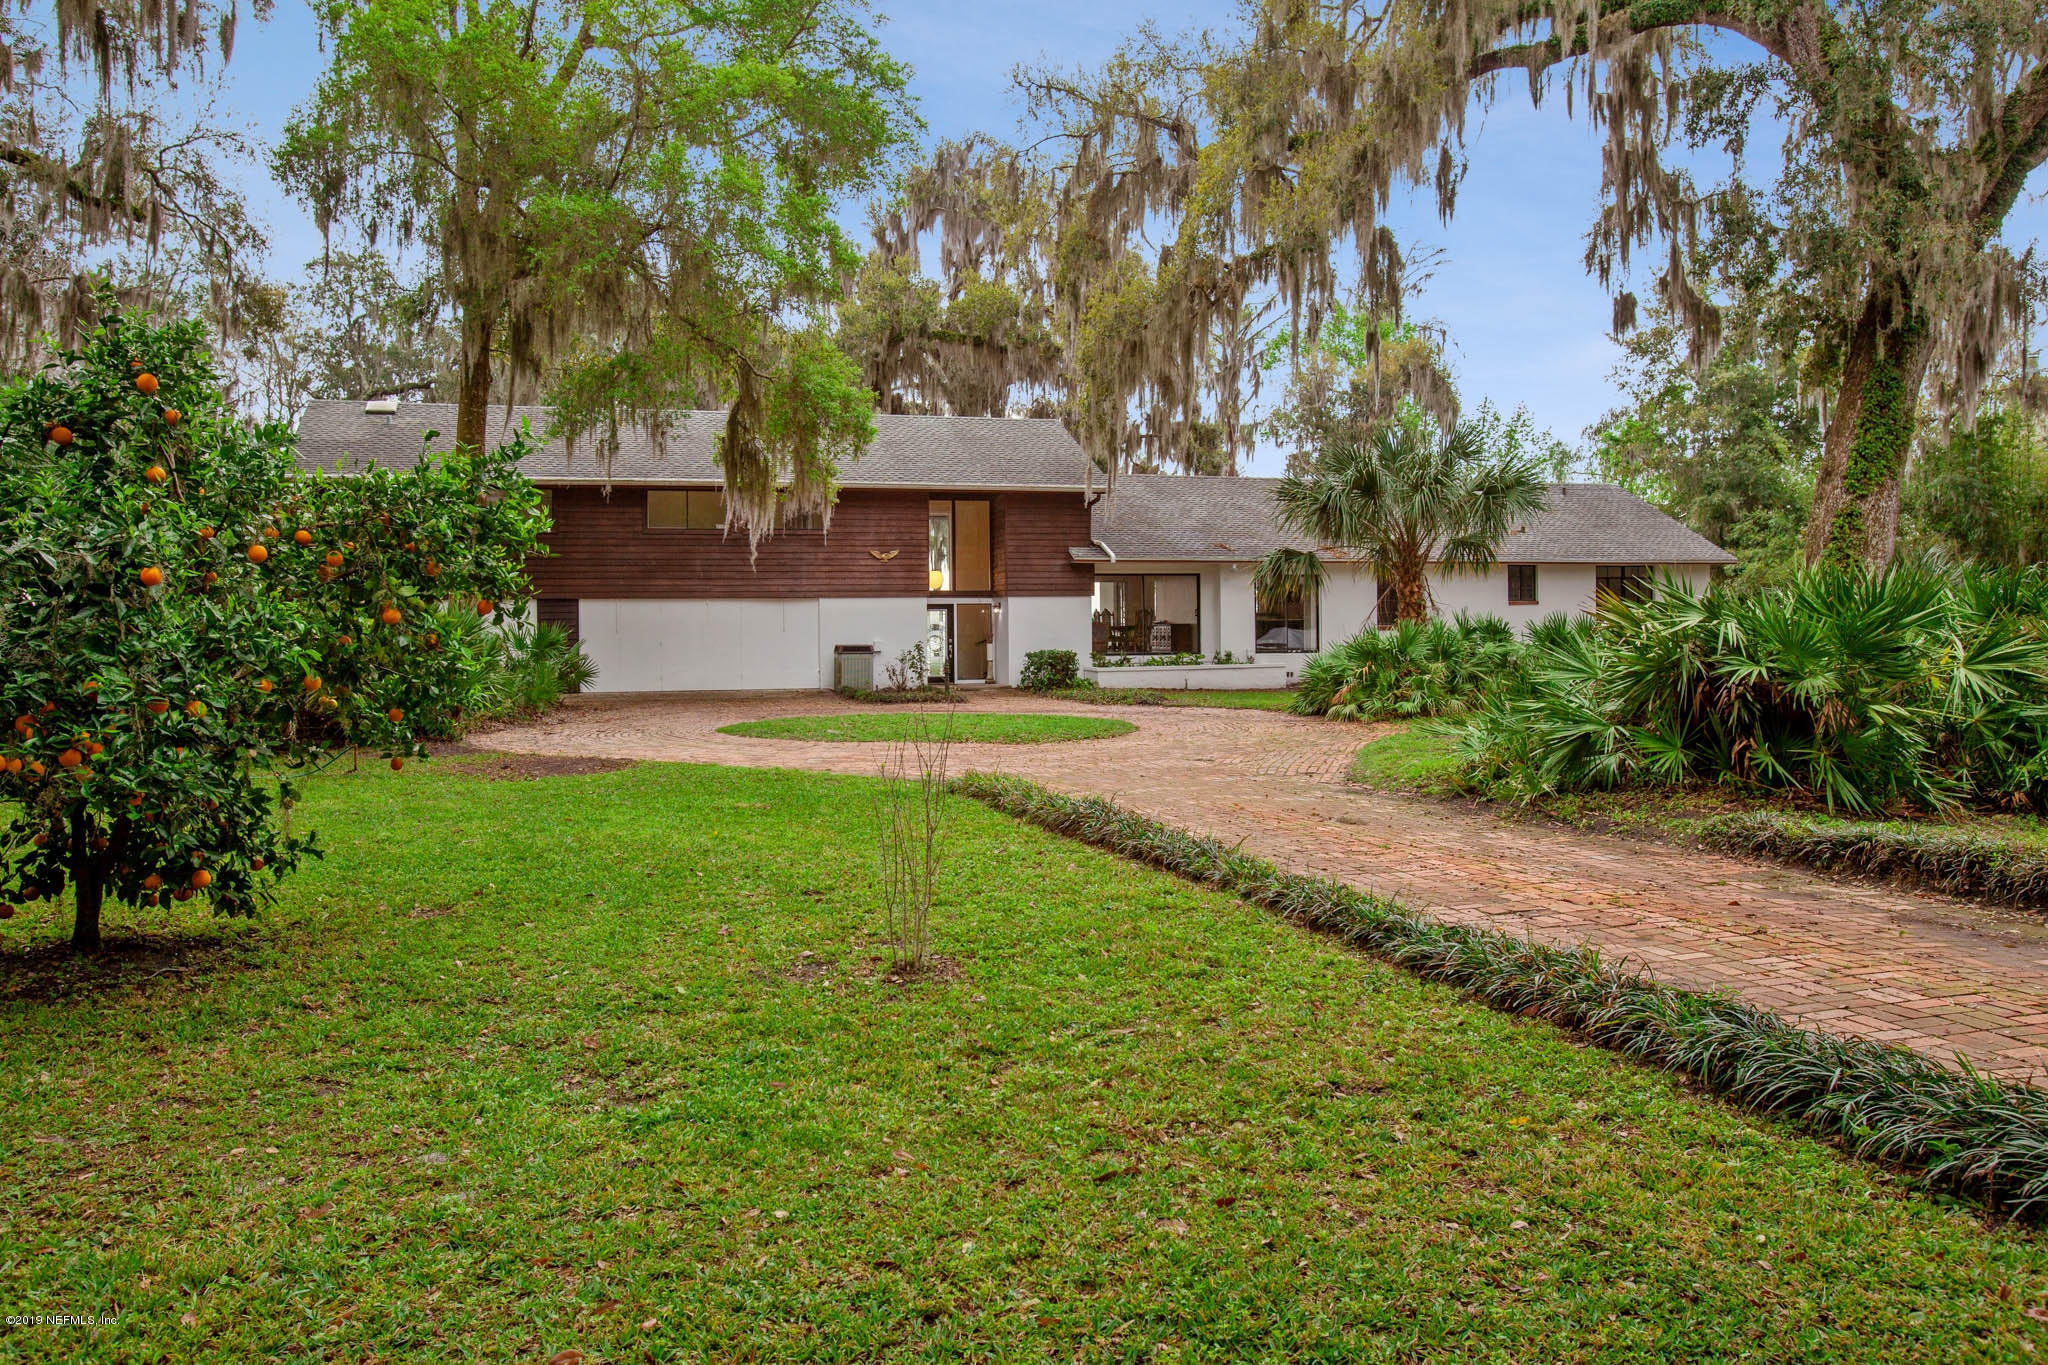 1255 PLEASANT POINT, GREEN COVE SPRINGS, FLORIDA 32043, 5 Bedrooms Bedrooms, ,4 BathroomsBathrooms,Residential - single family,For sale,PLEASANT POINT,984490